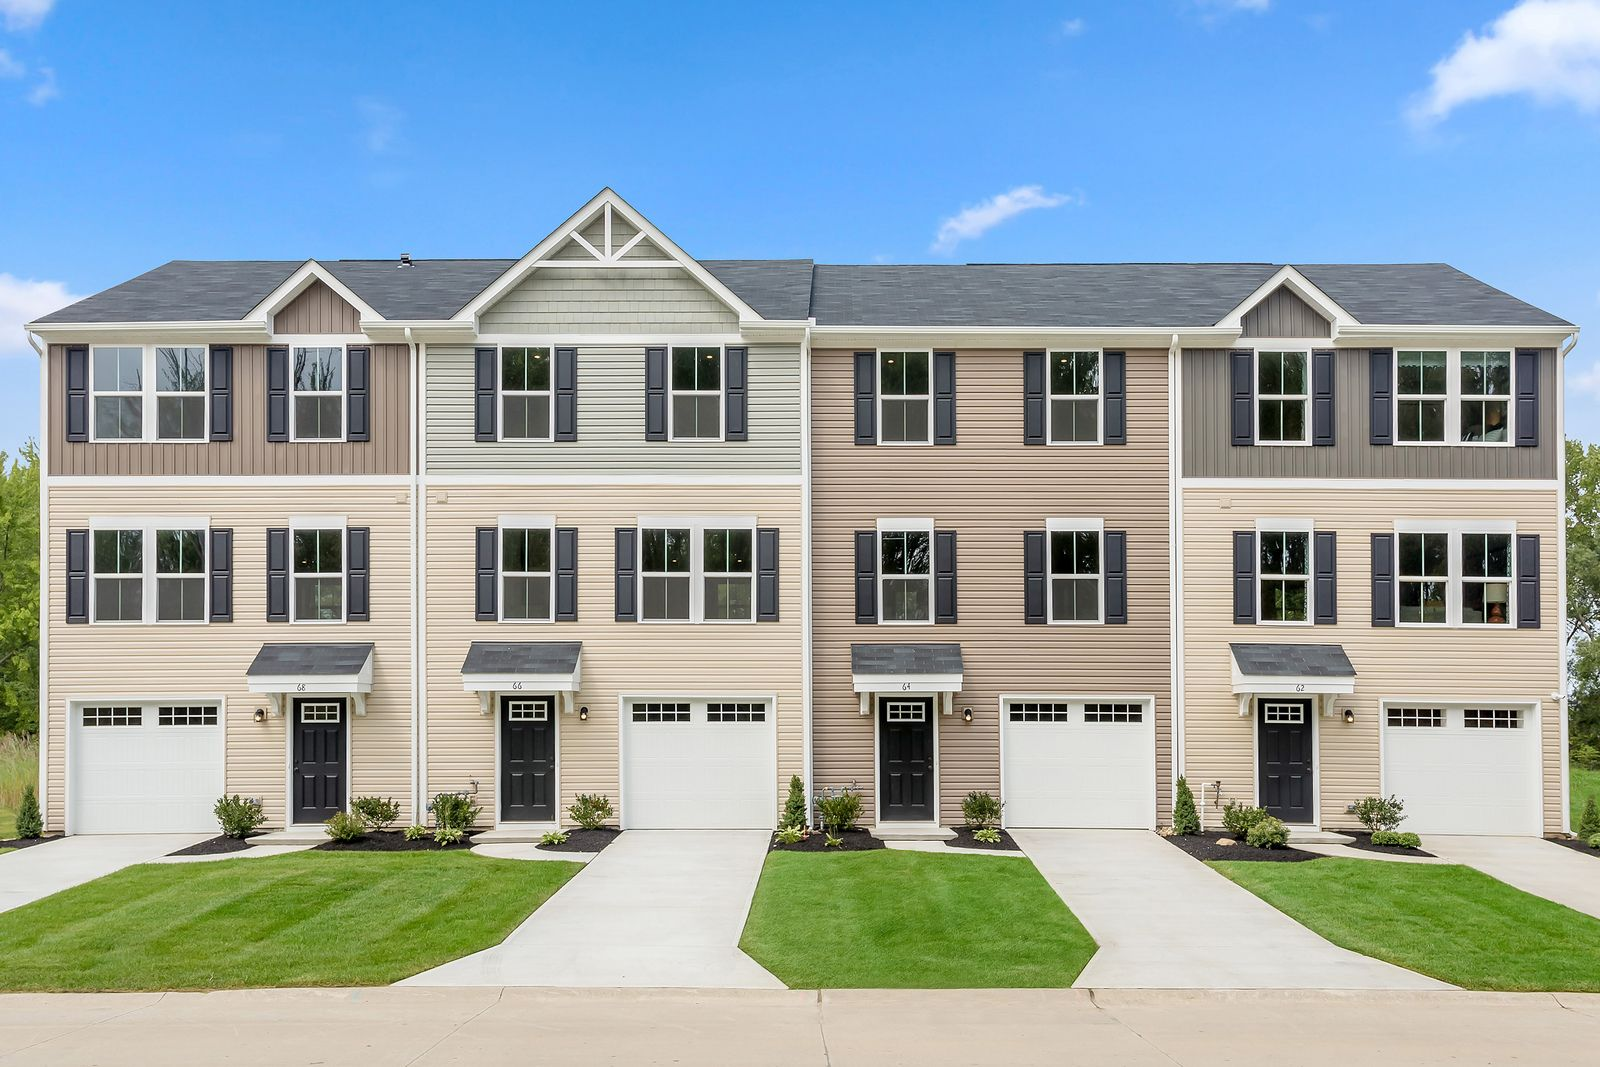 Welcome home to Hamilton Greene:Enjoy pride and privacy of homeownership in a new townhome with a back yard. Just 3 miles from 42, 322, and the AC Expressway. Click here to start your journey towards home ownership. Photo (1)